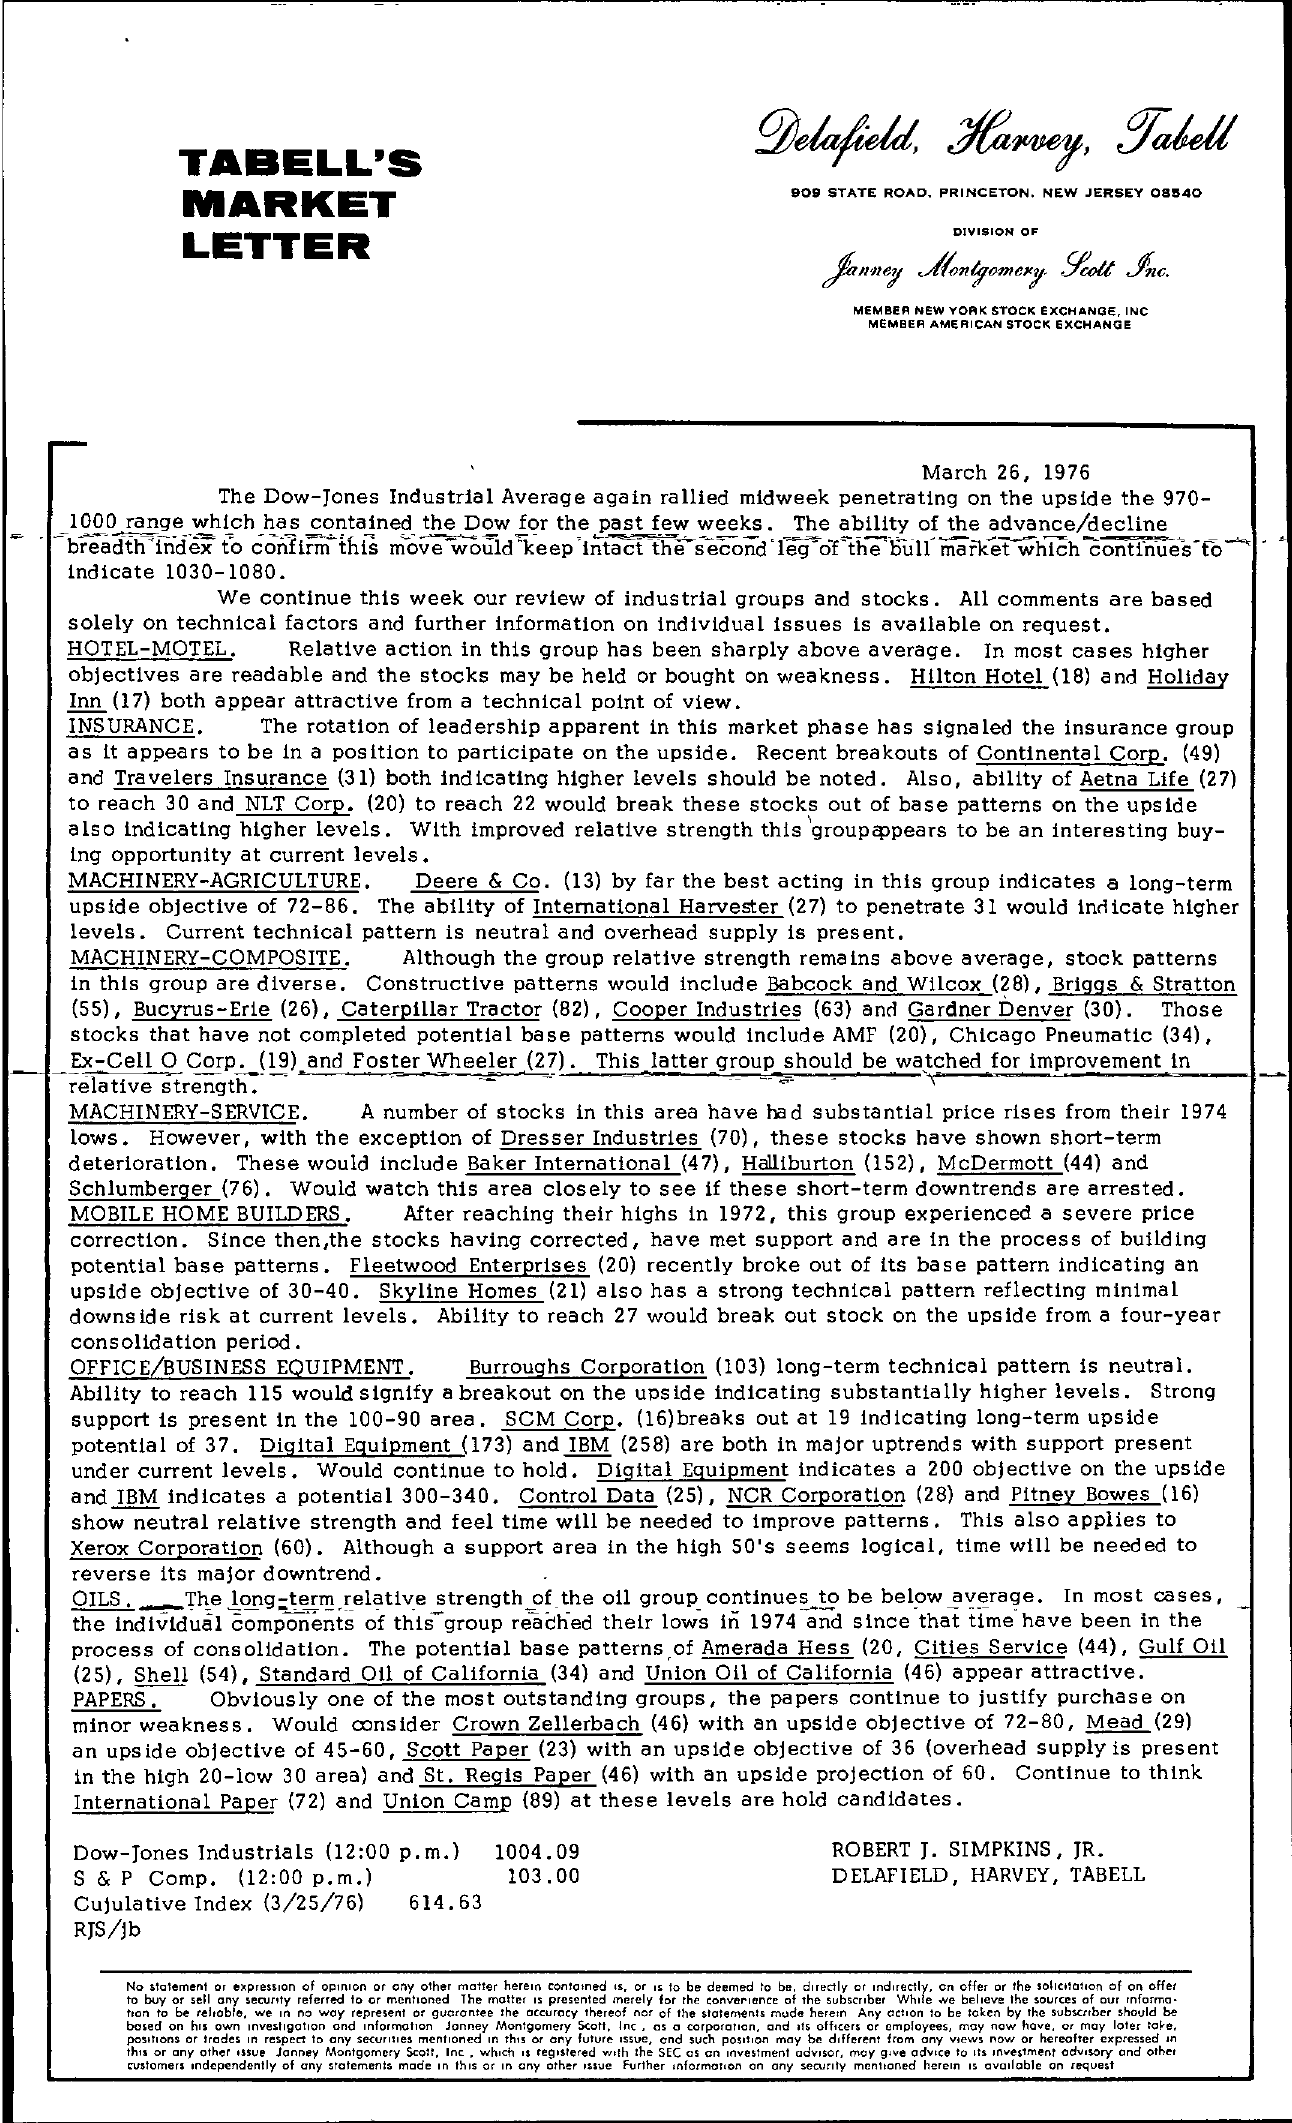 Tabell's Market Letter - March 26, 1976